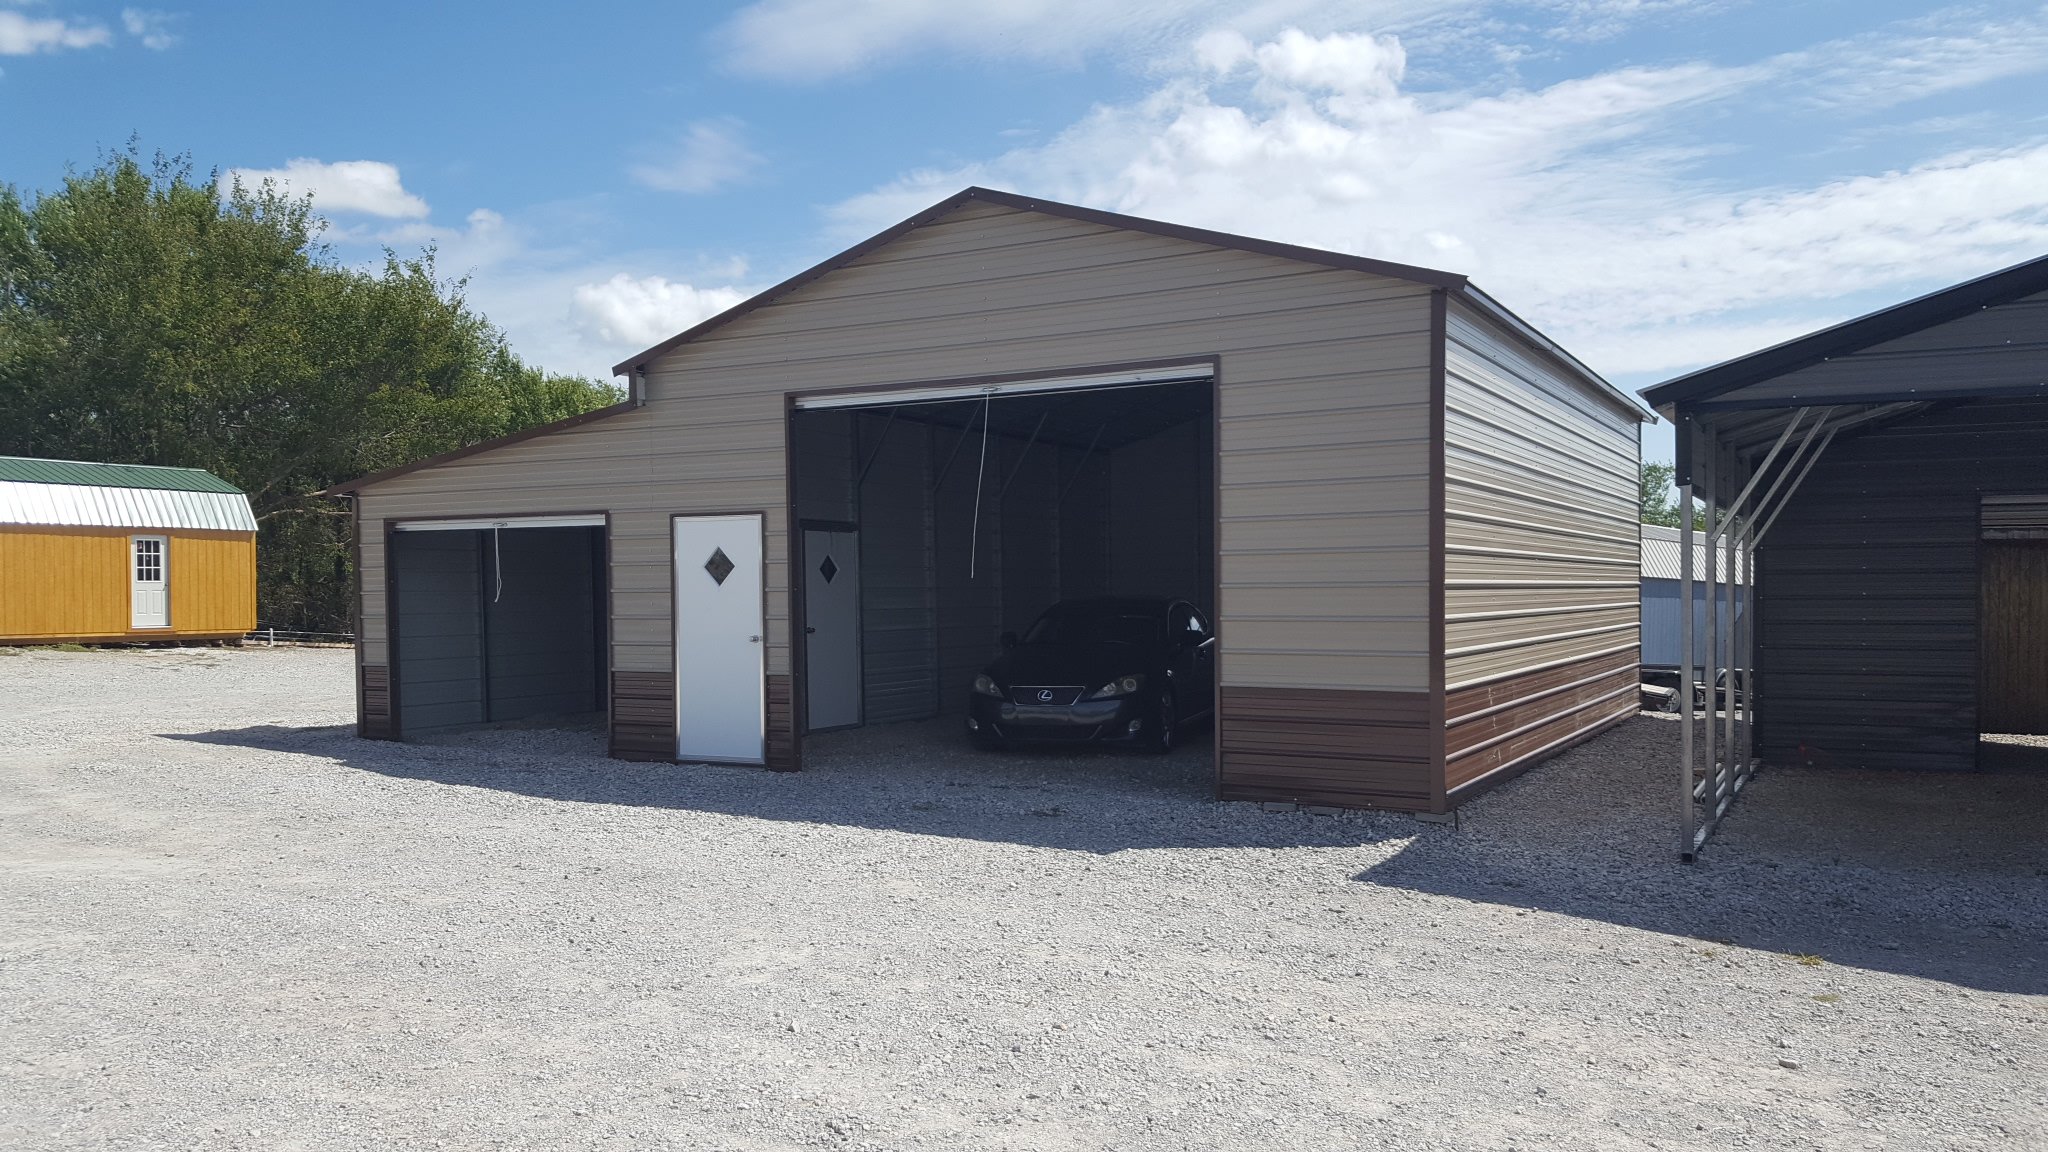 Portable Metal Carports Florida : Home trailers portable storage buildings and carports